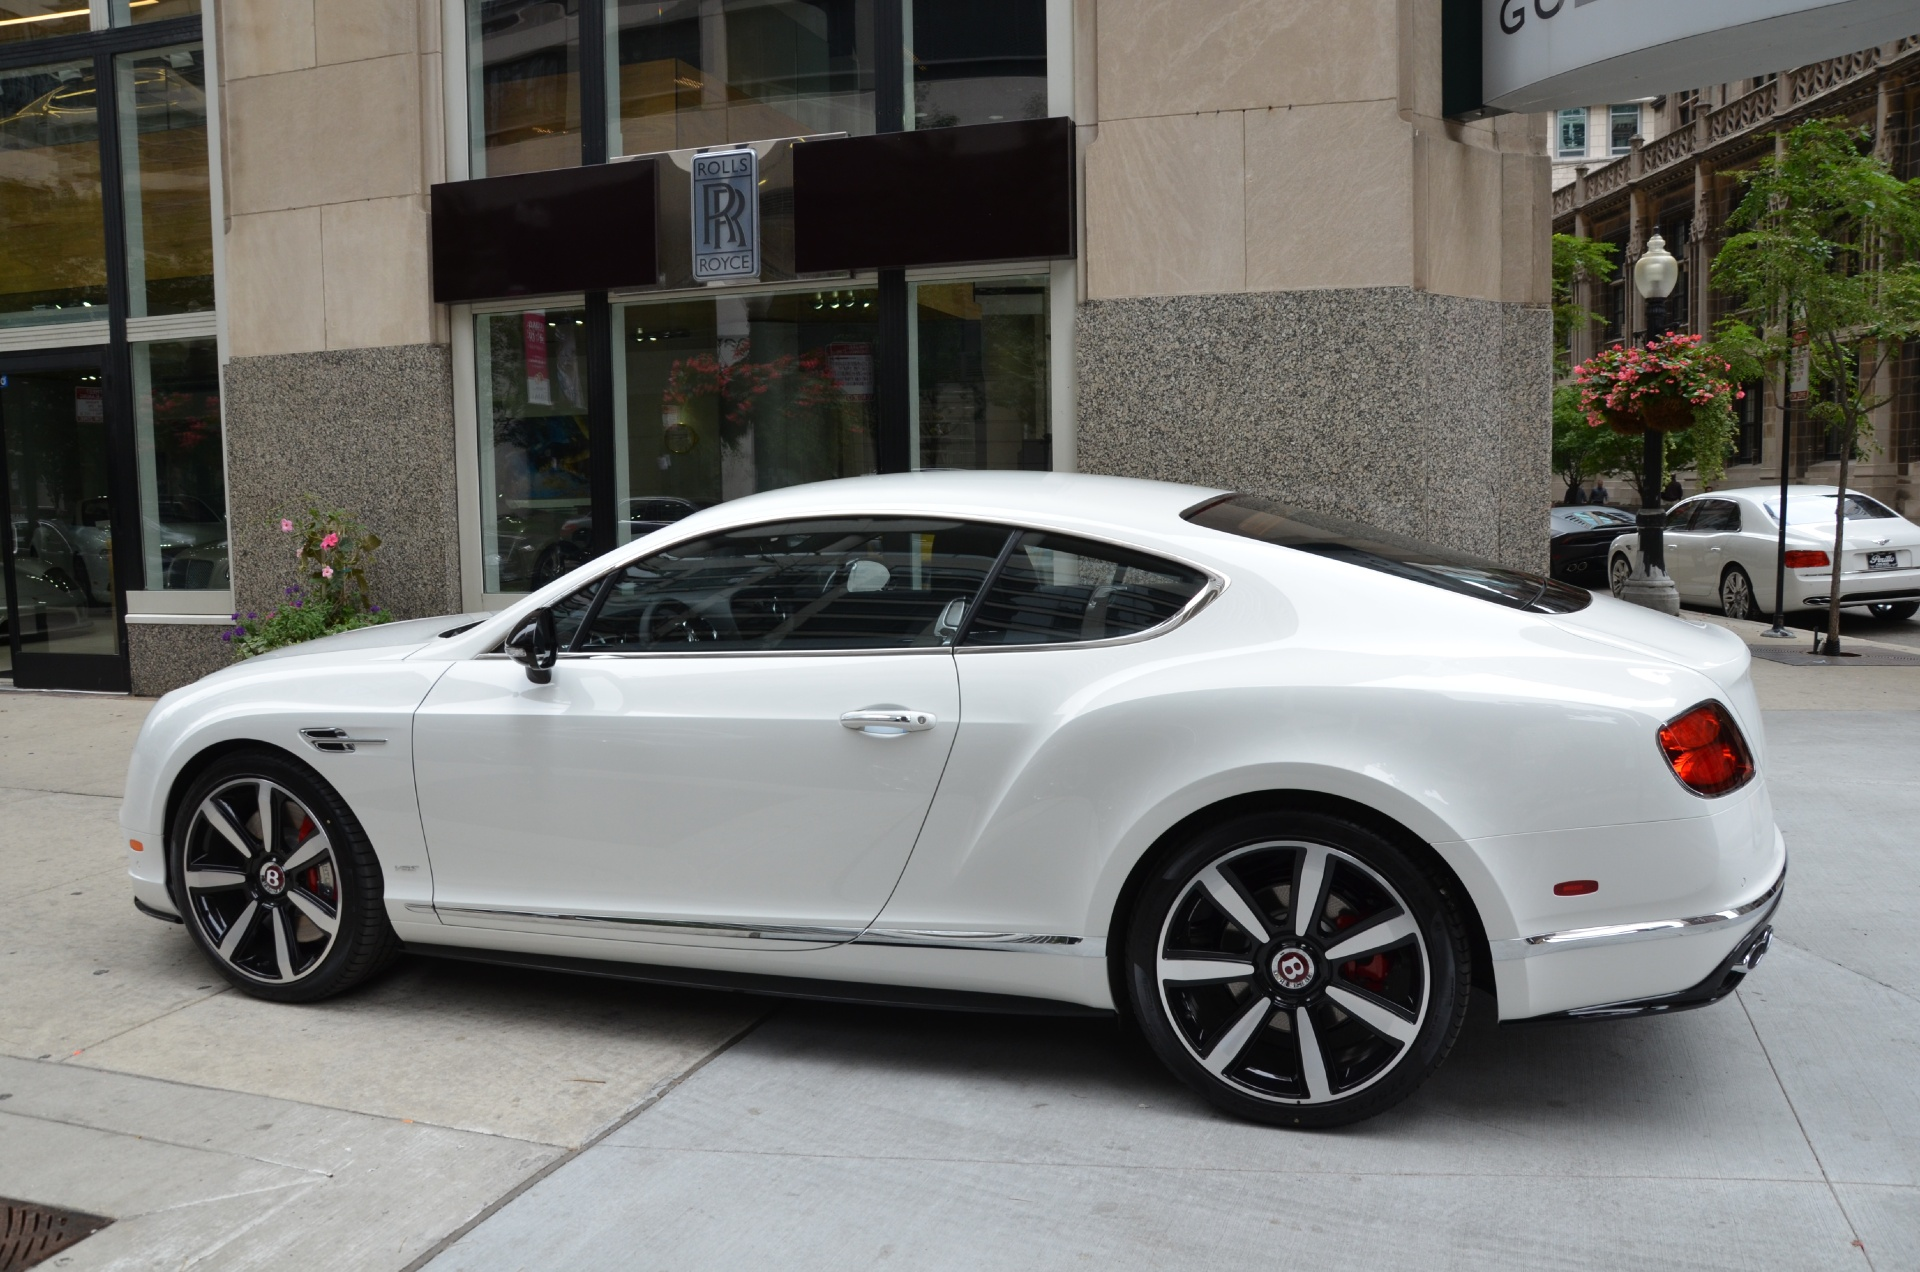 2016 bentley continental gt v8 s stock b725 s for sale near chicago il il bentley dealer. Black Bedroom Furniture Sets. Home Design Ideas